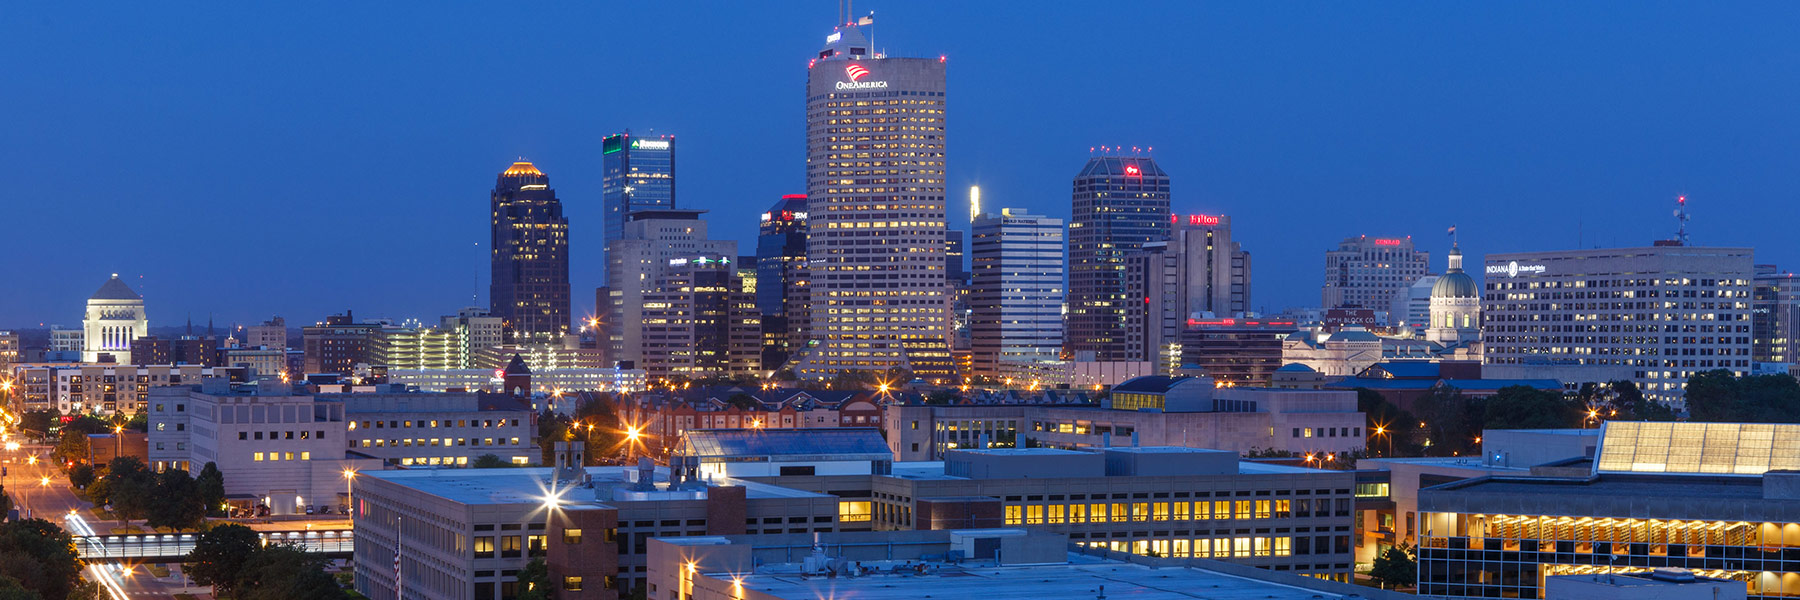 An aerial view of the Indianapolis skyline at night